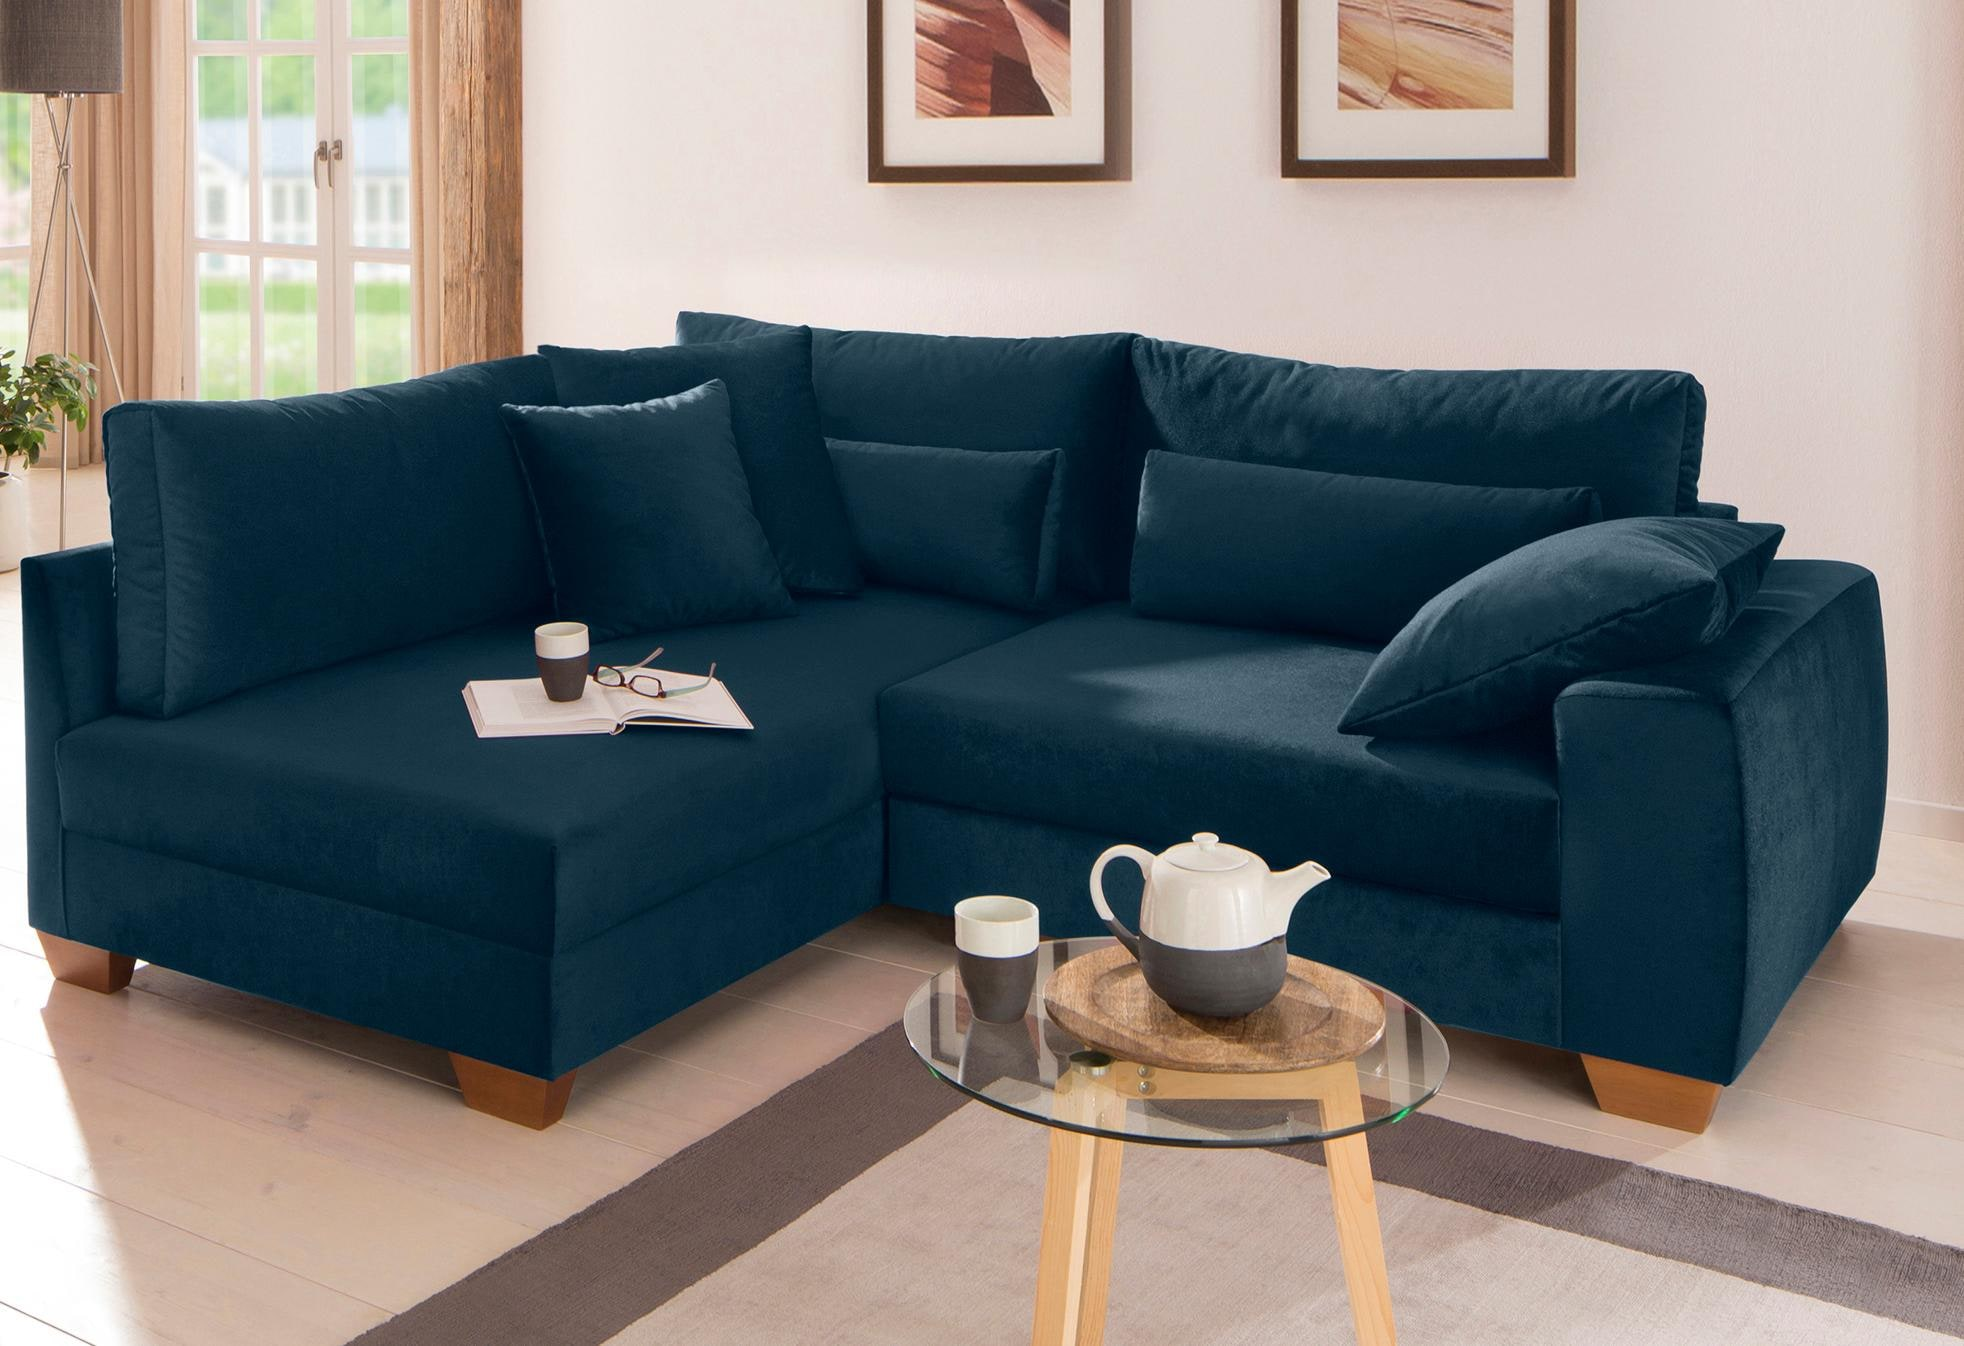 Home affaire Ecksofa Kerstin